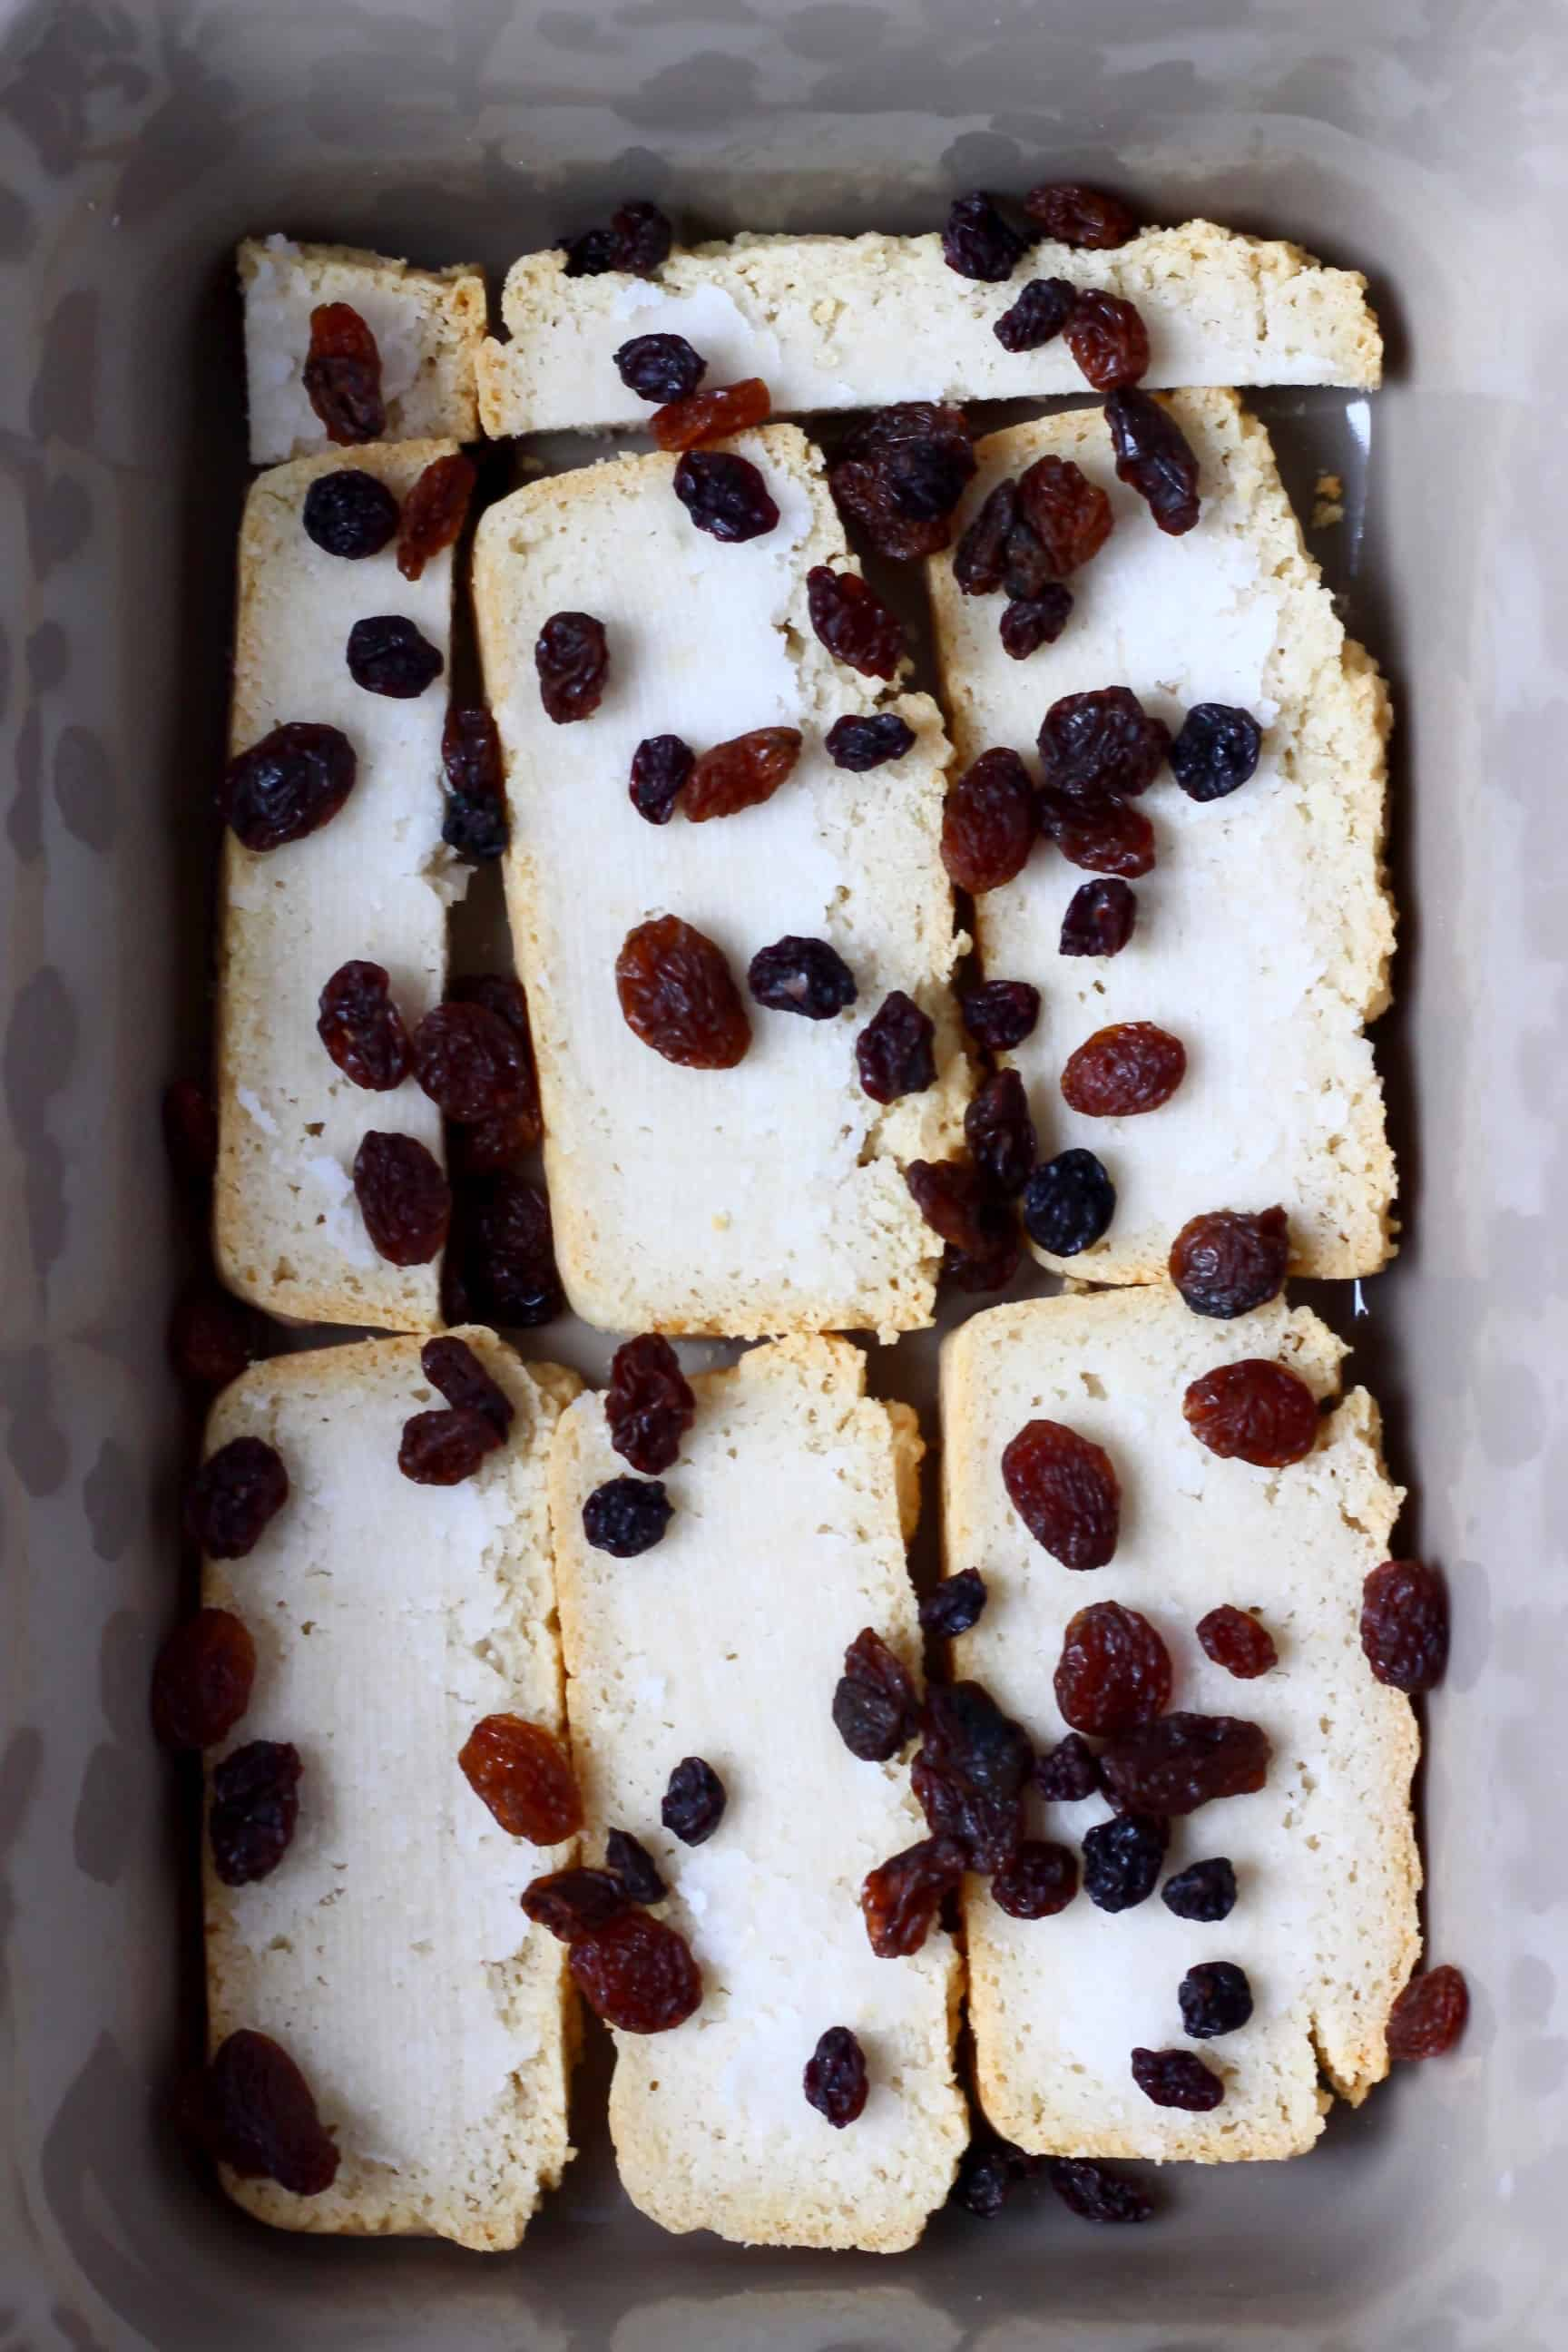 Slices of bread spread with coconut oil and topped with raisins in a grey rectangular baking dish